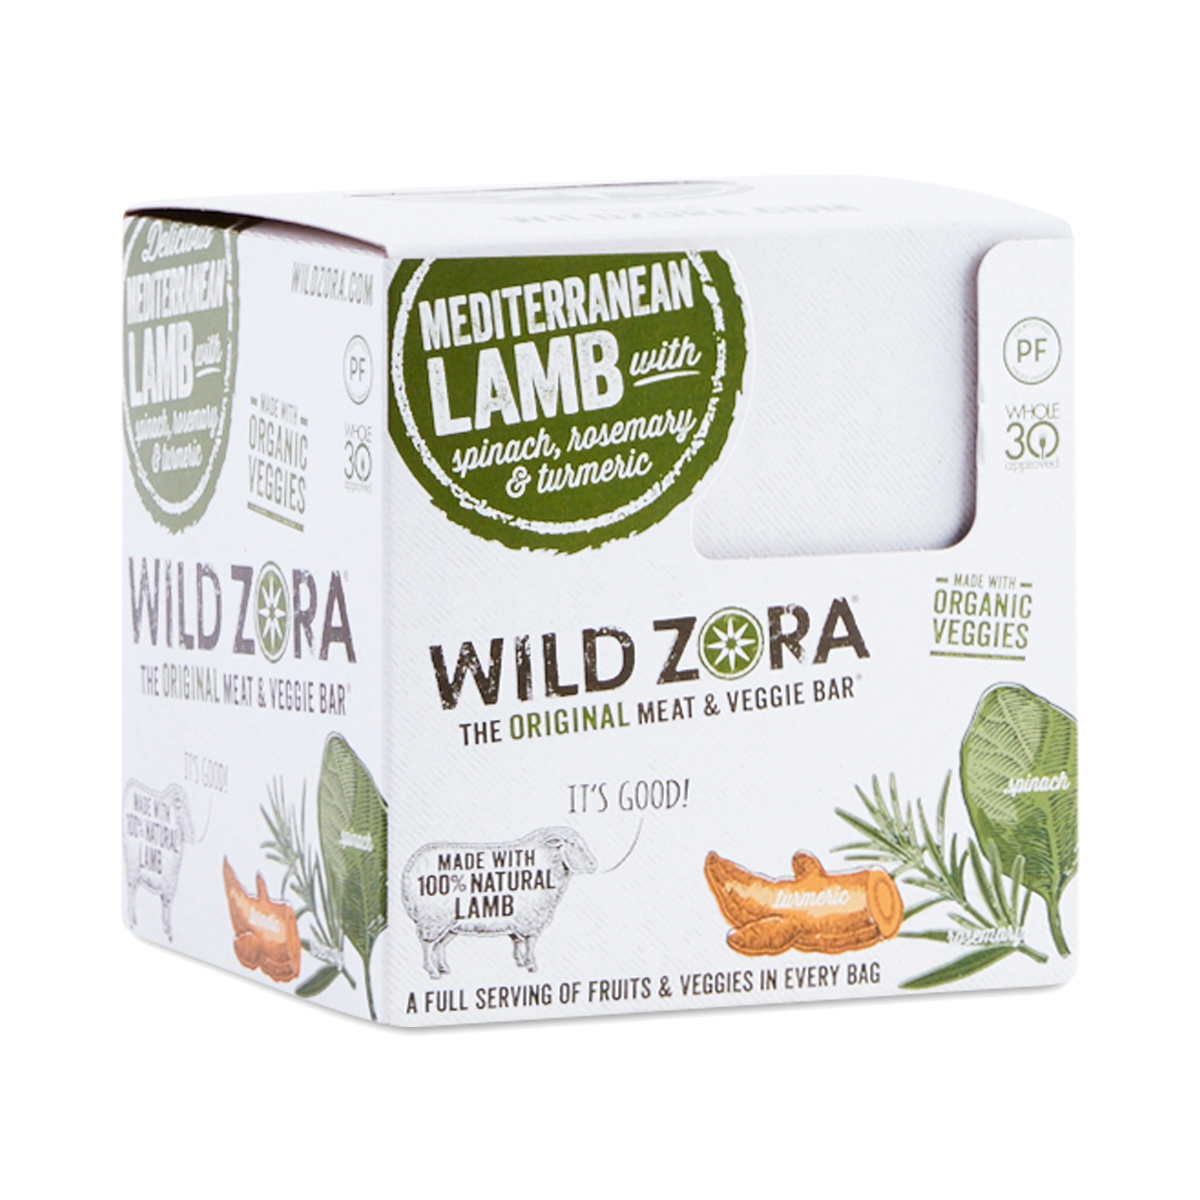 Wild Zora Meat & Veggie Bars, Mediterranean Lamb 10 bars (1.1 oz each)